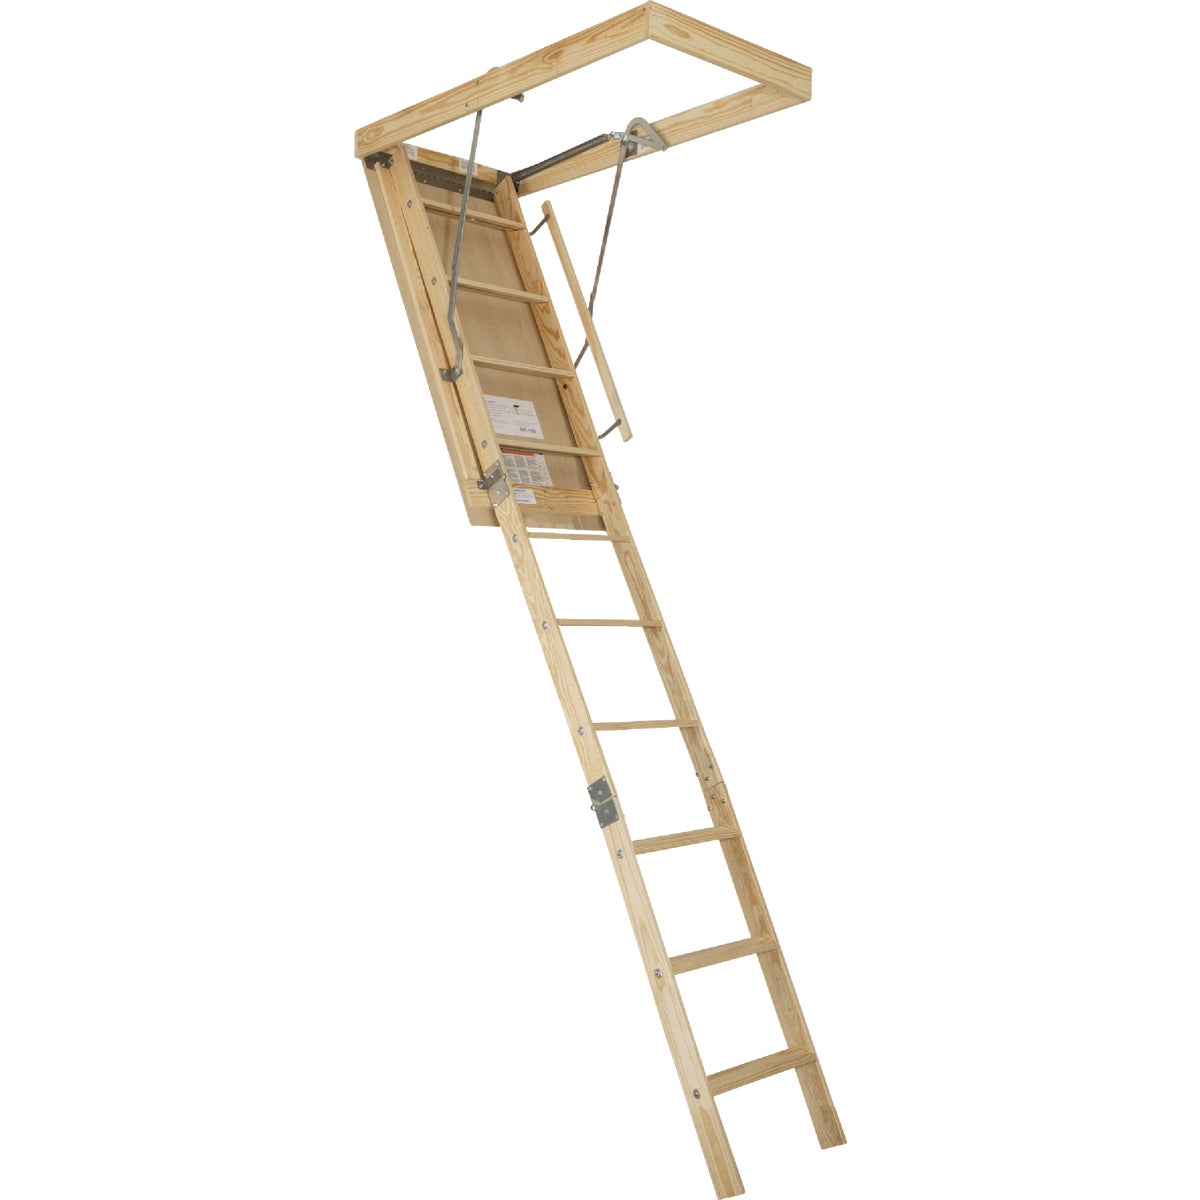 25X105 WNDSR ATTIC STAIR - BE89 by Louisville Ladder